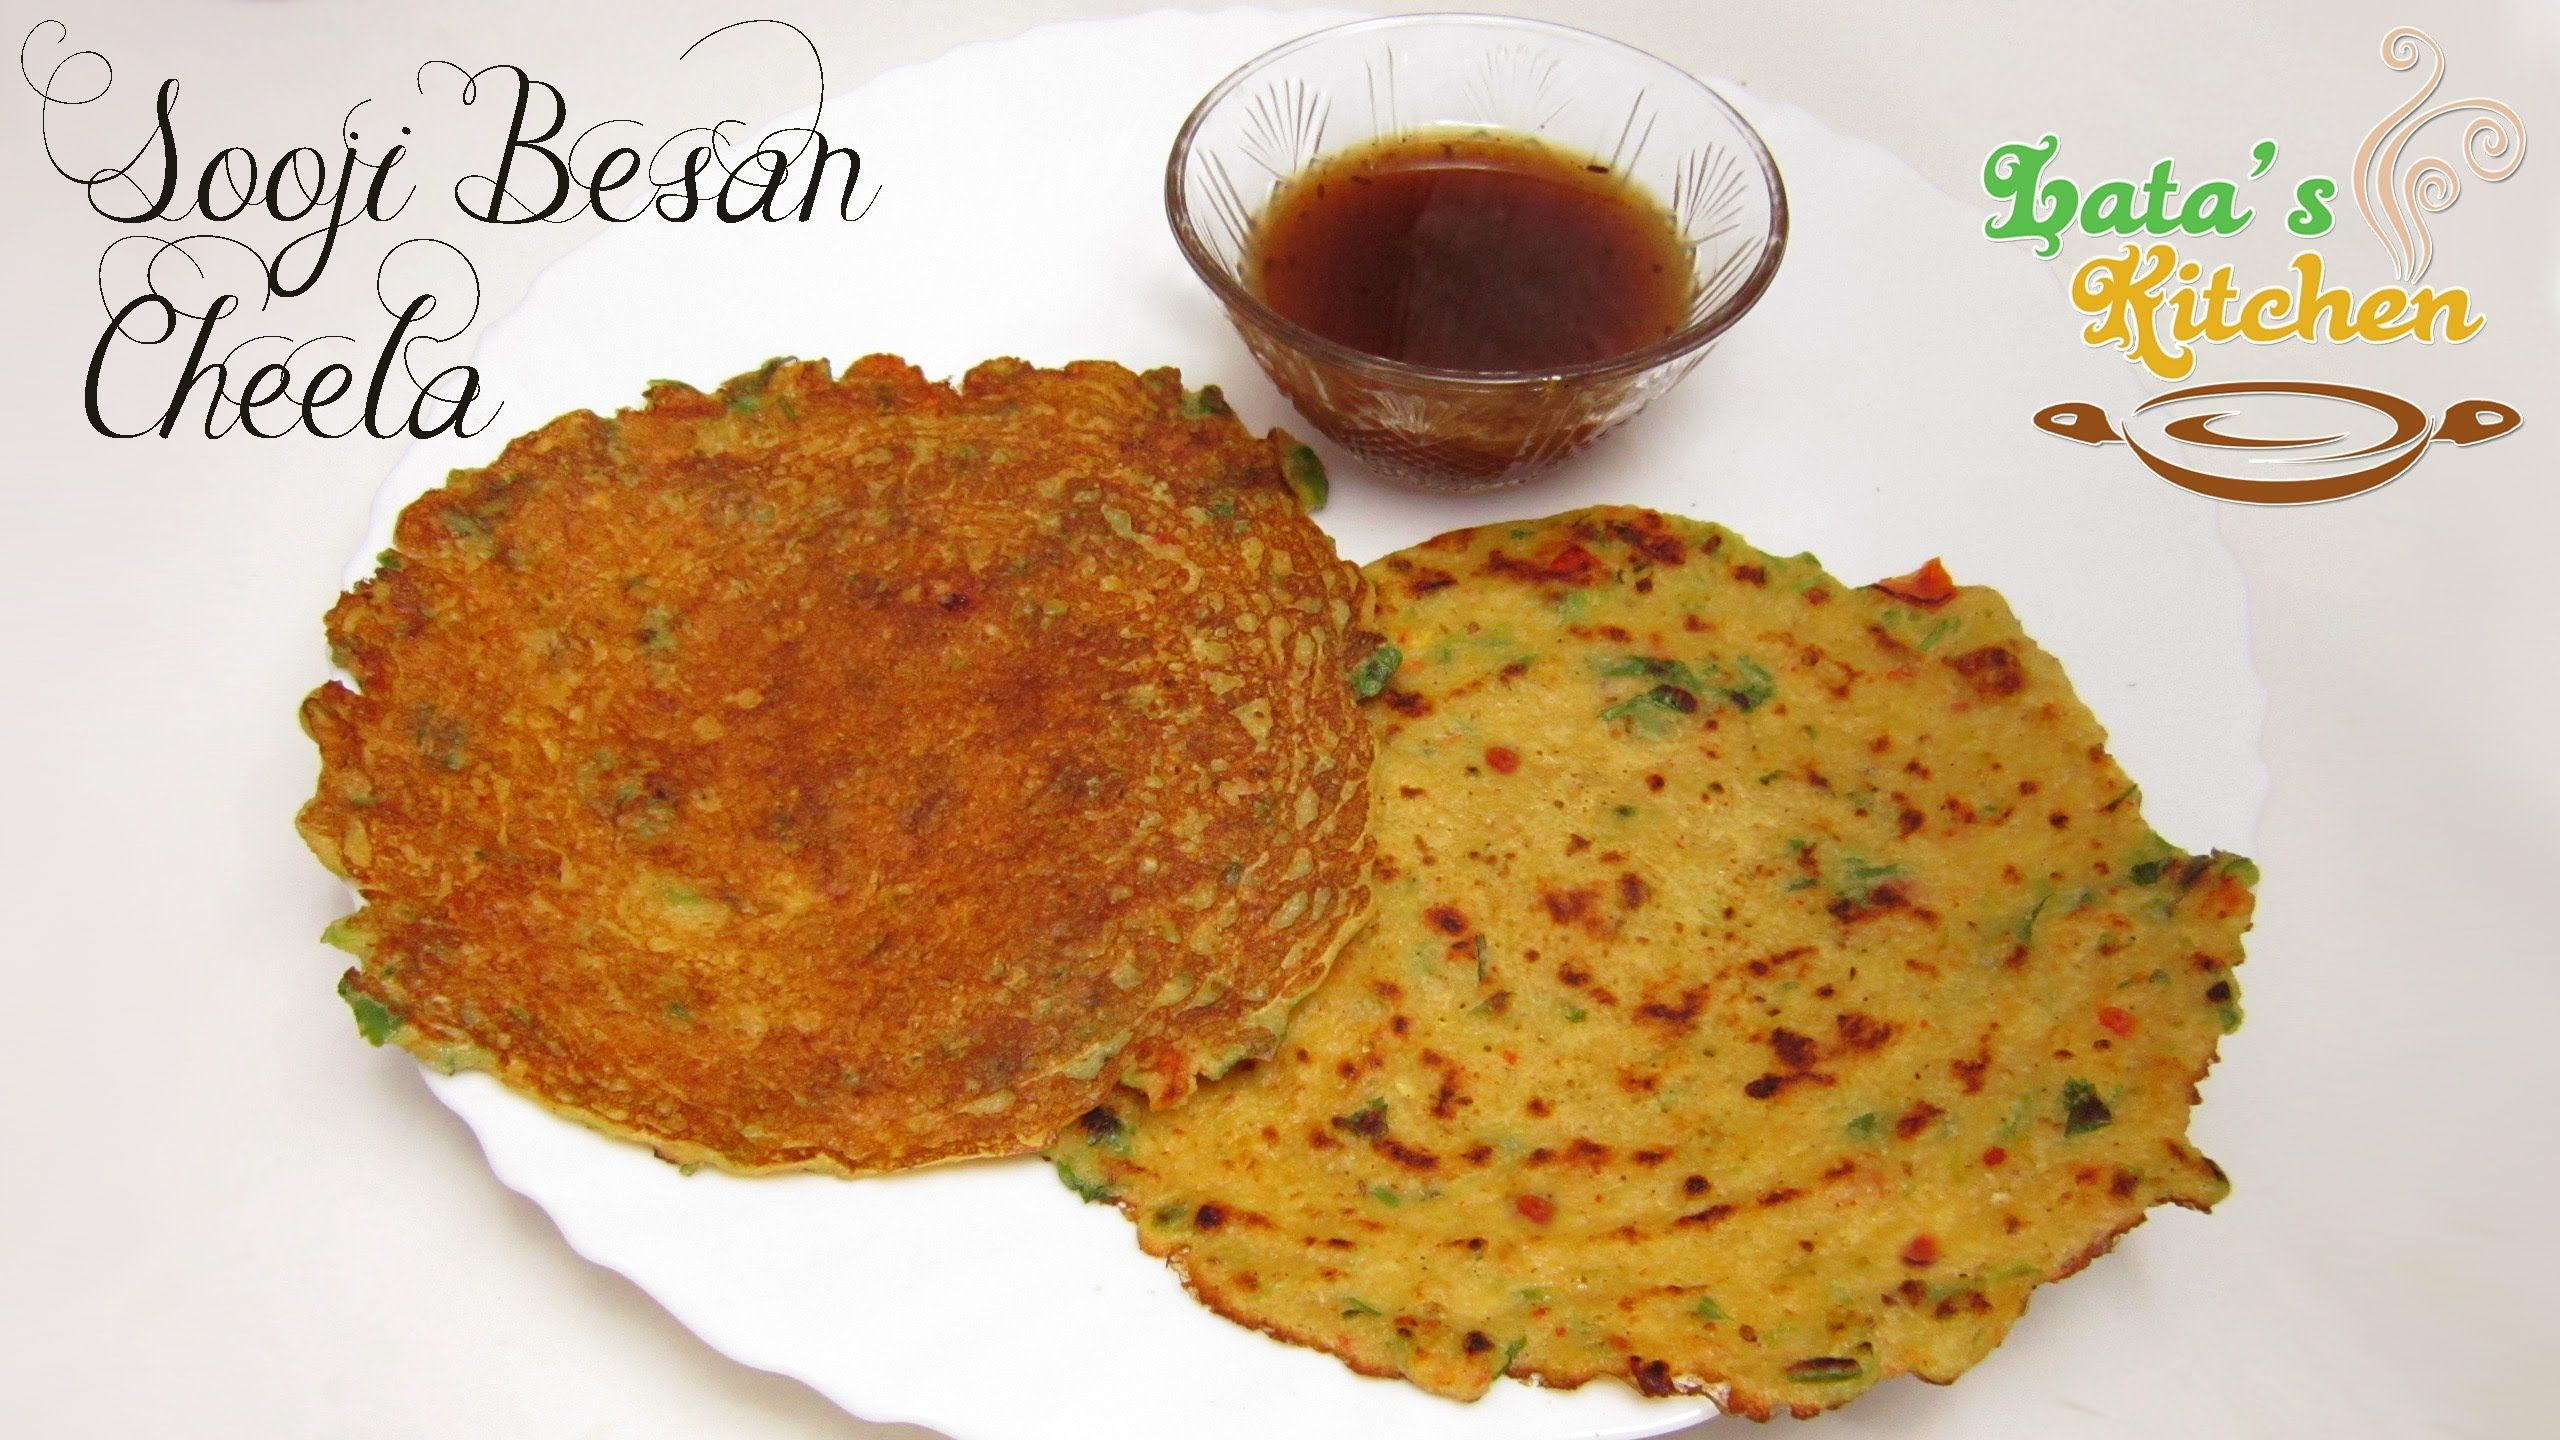 Sooji besan cheela recipe video indian vegetarian recipe in sooji besan cheela recipe video indian vegetarian recipe in hindi with english subtitles forumfinder Image collections